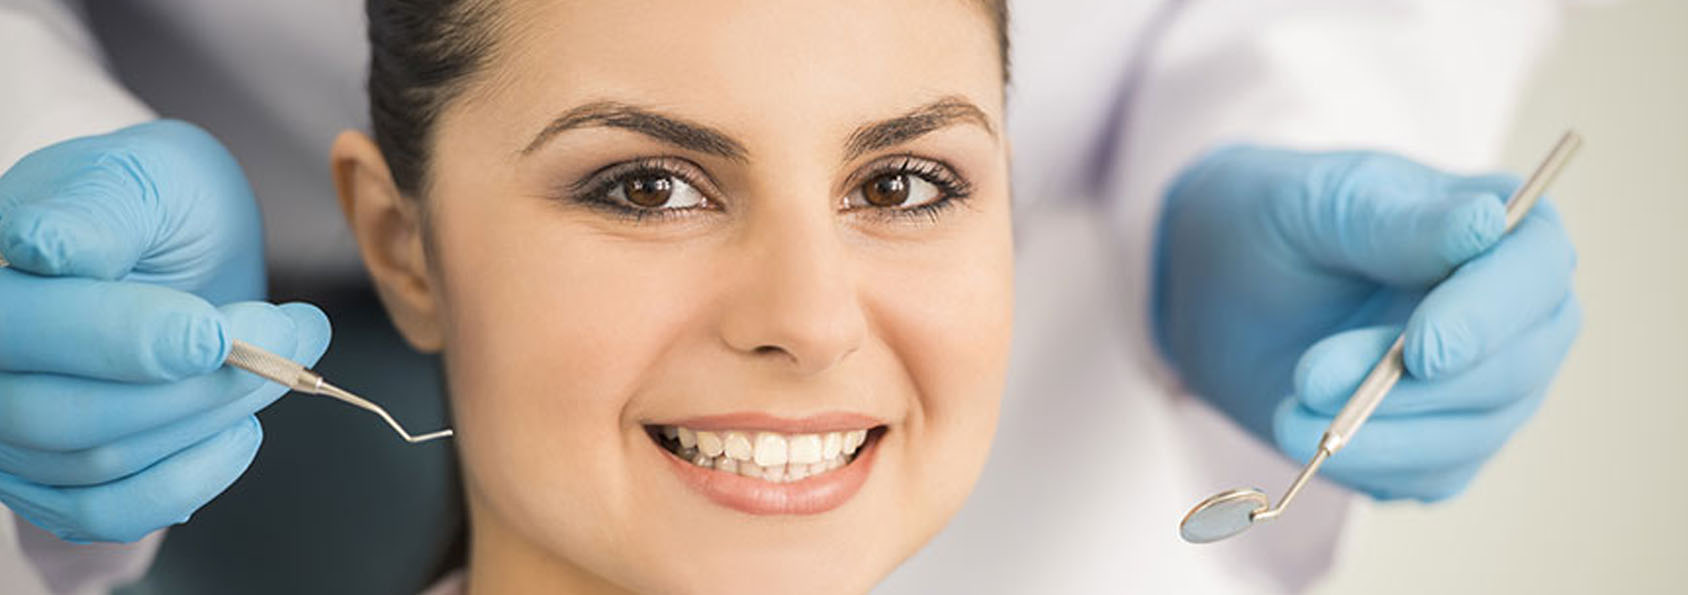 Missing Teeth: More than Just a Gap in Your Smile